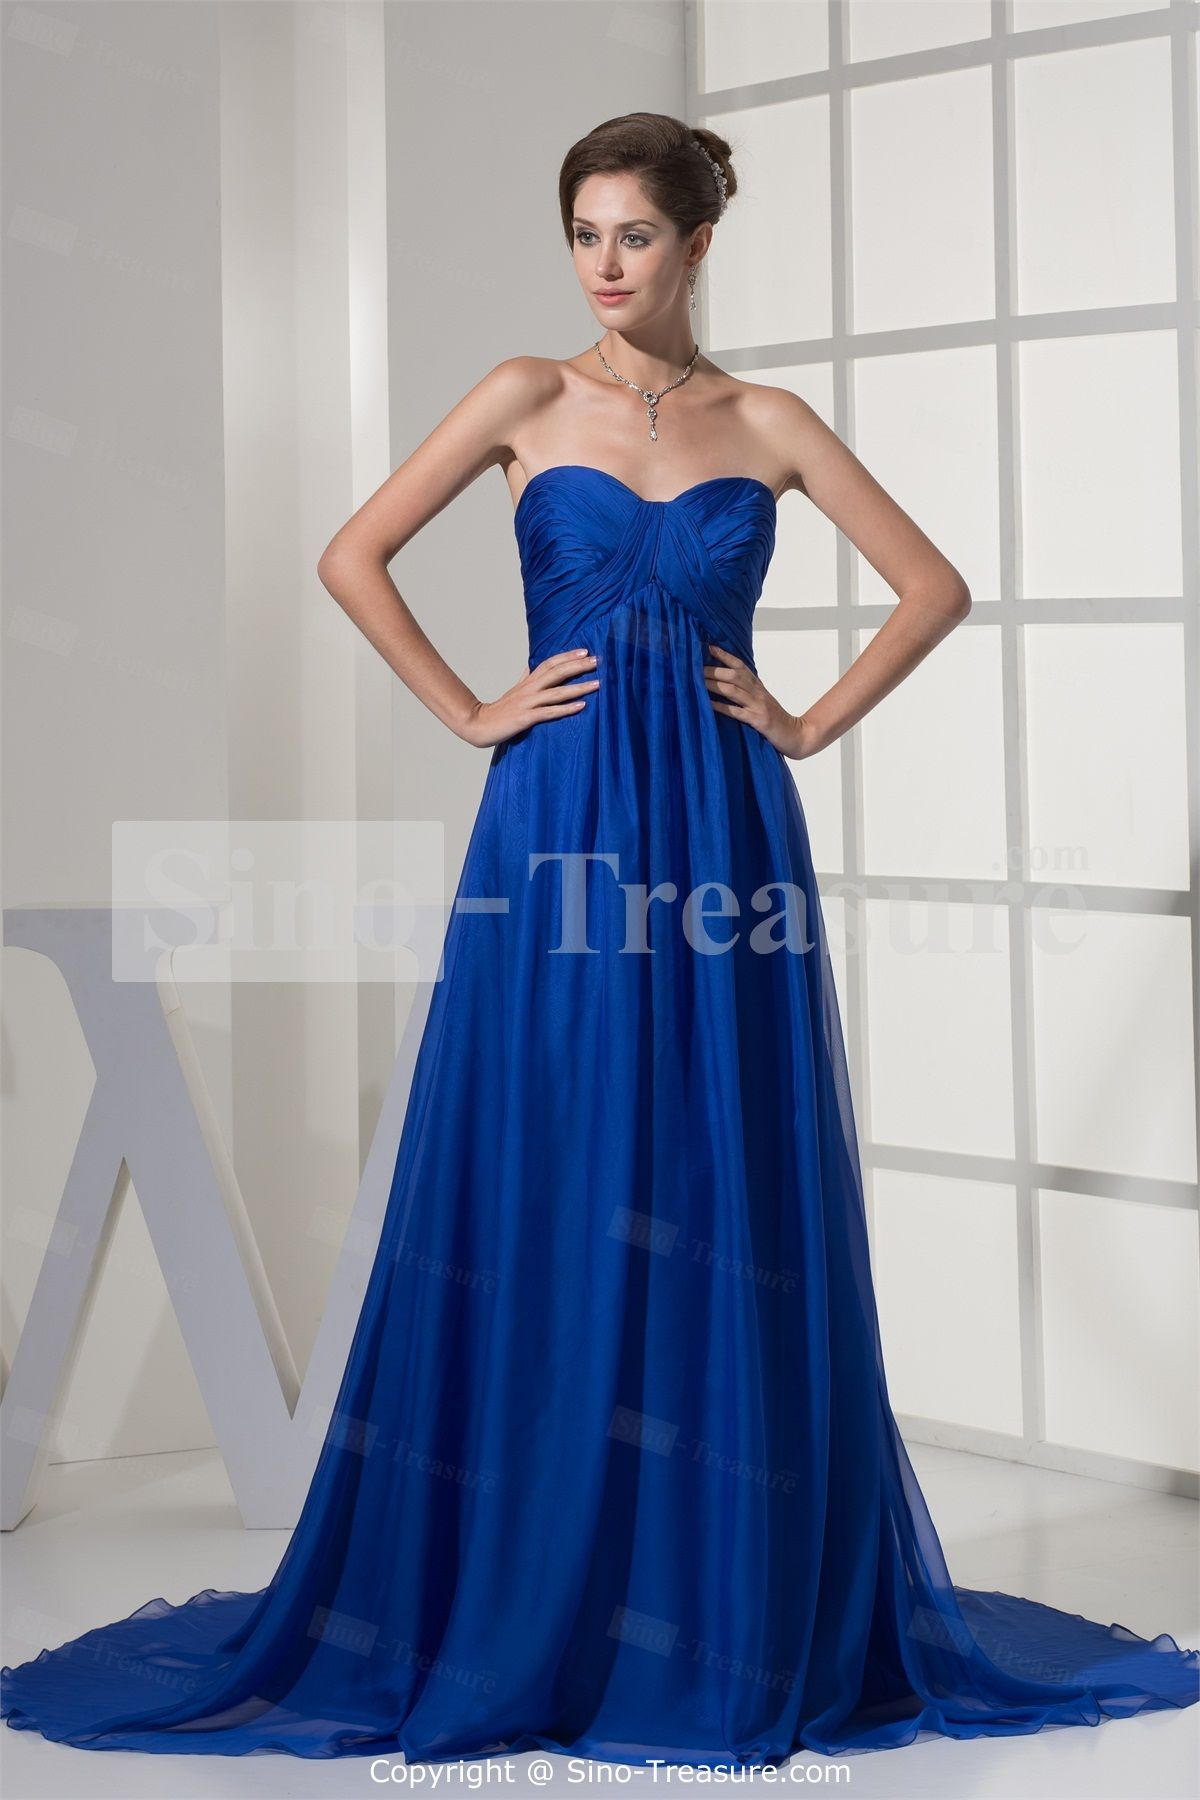 Blue evening dress google search bridesmaids and groomsmen